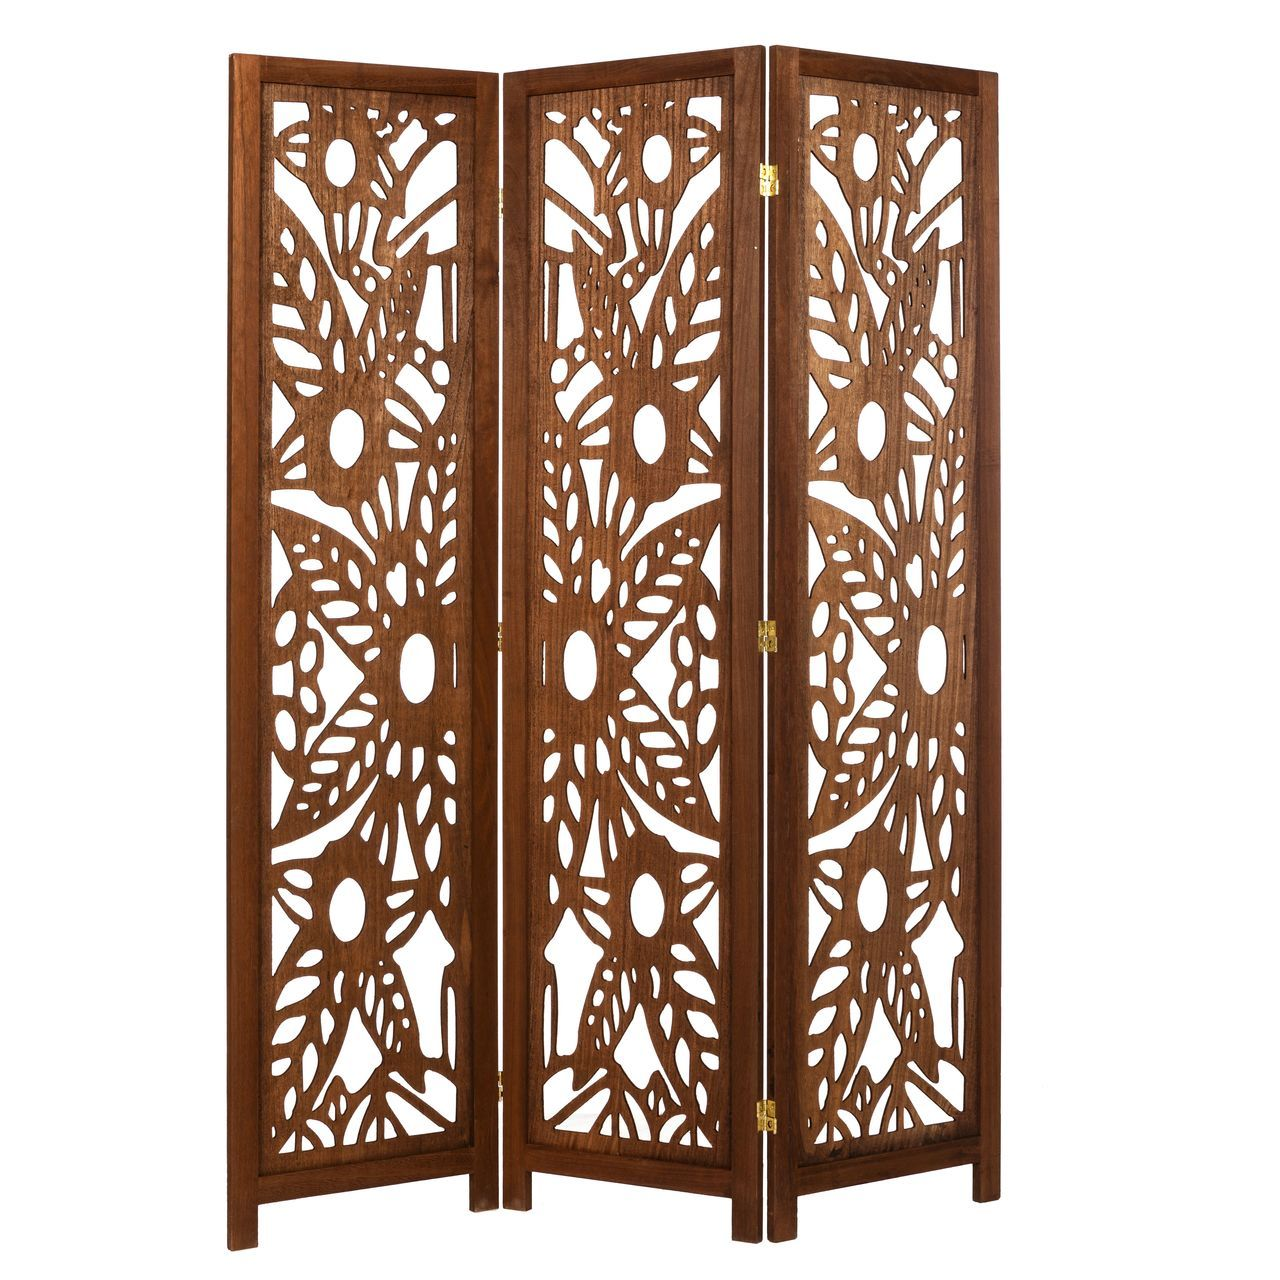 3 Panel Solid Wood Screen Room Divider Walnut Brown Color With Decorative Floral Cutouts By Legacy Decor Room Divider Panel Room Divider Shoji Room Divider